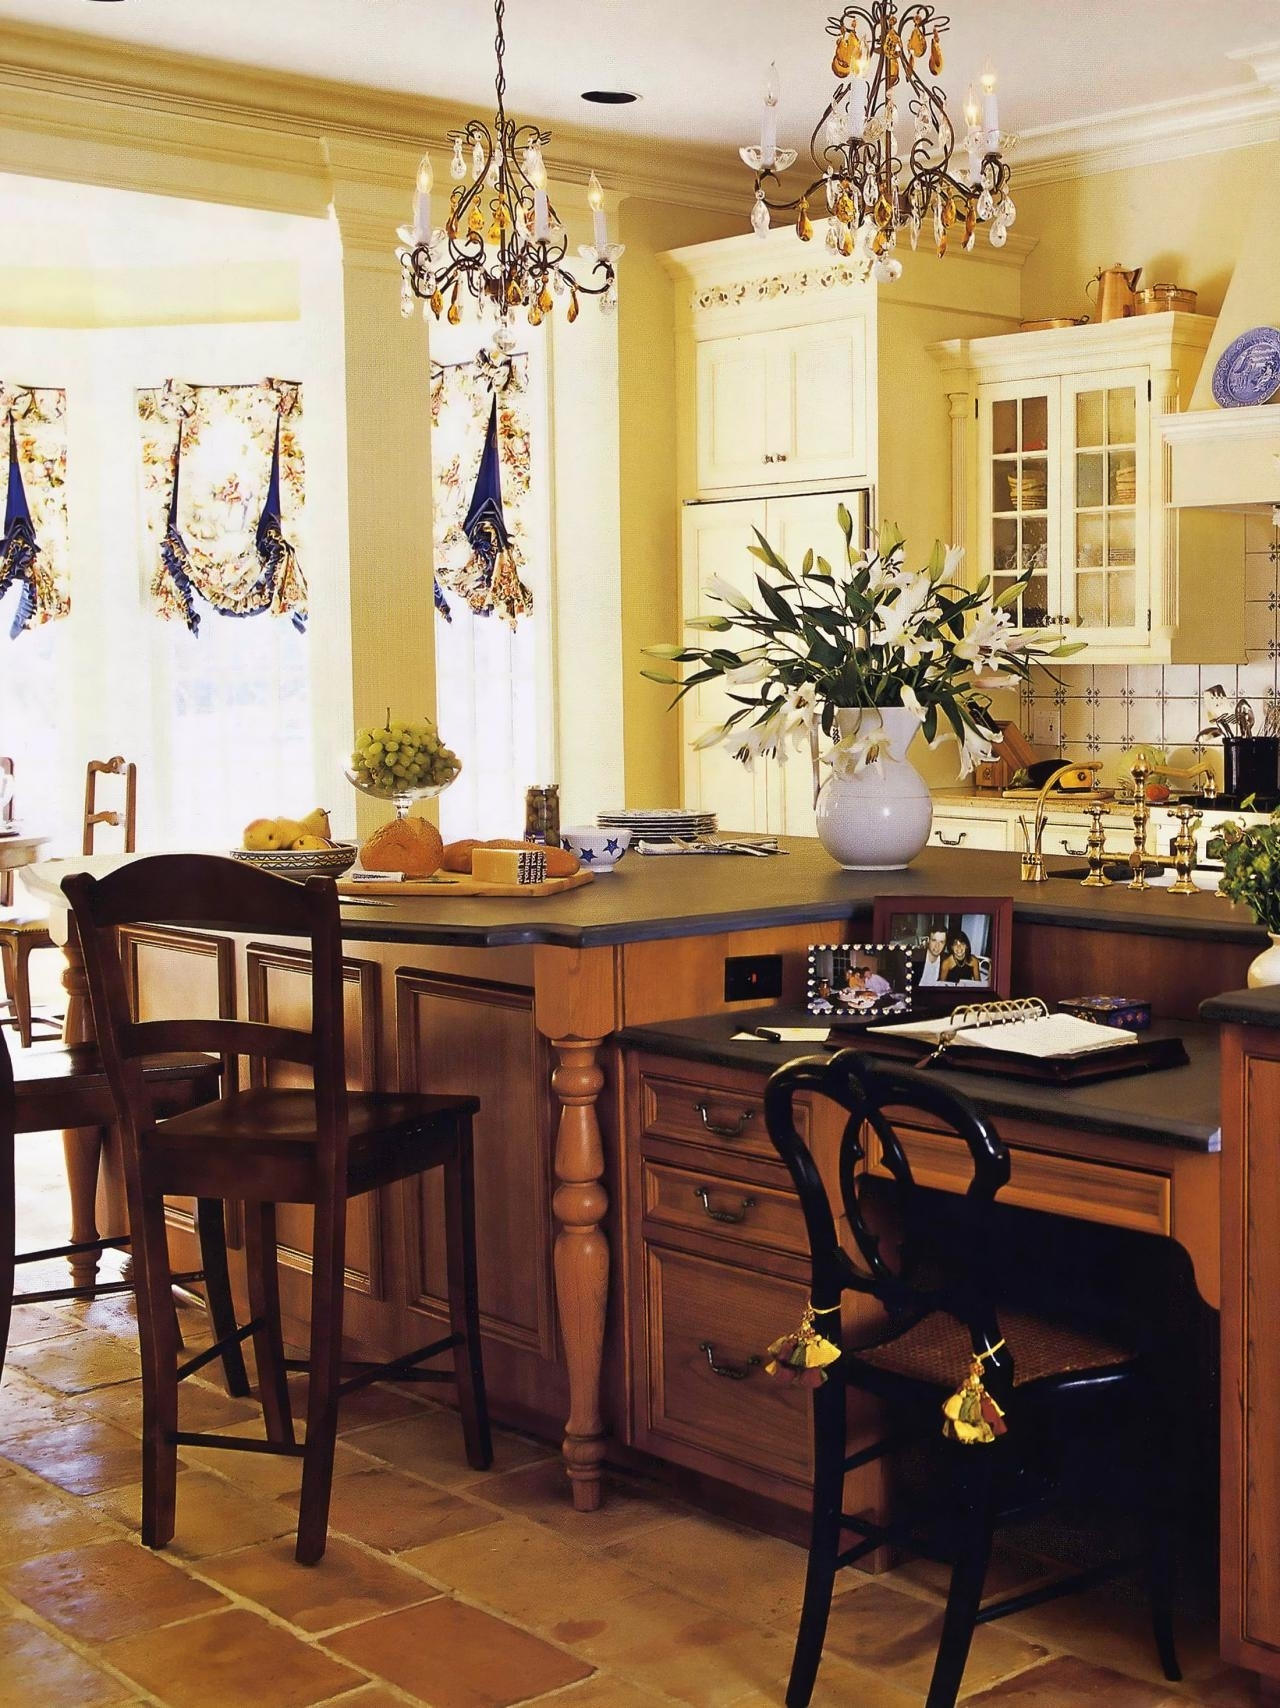 Preferred Kitchen : Drum Pendant Chandelier Customize Kitchen Lighting With Inside Small Rustic Kitchen Chandeliers (View 15 of 15)